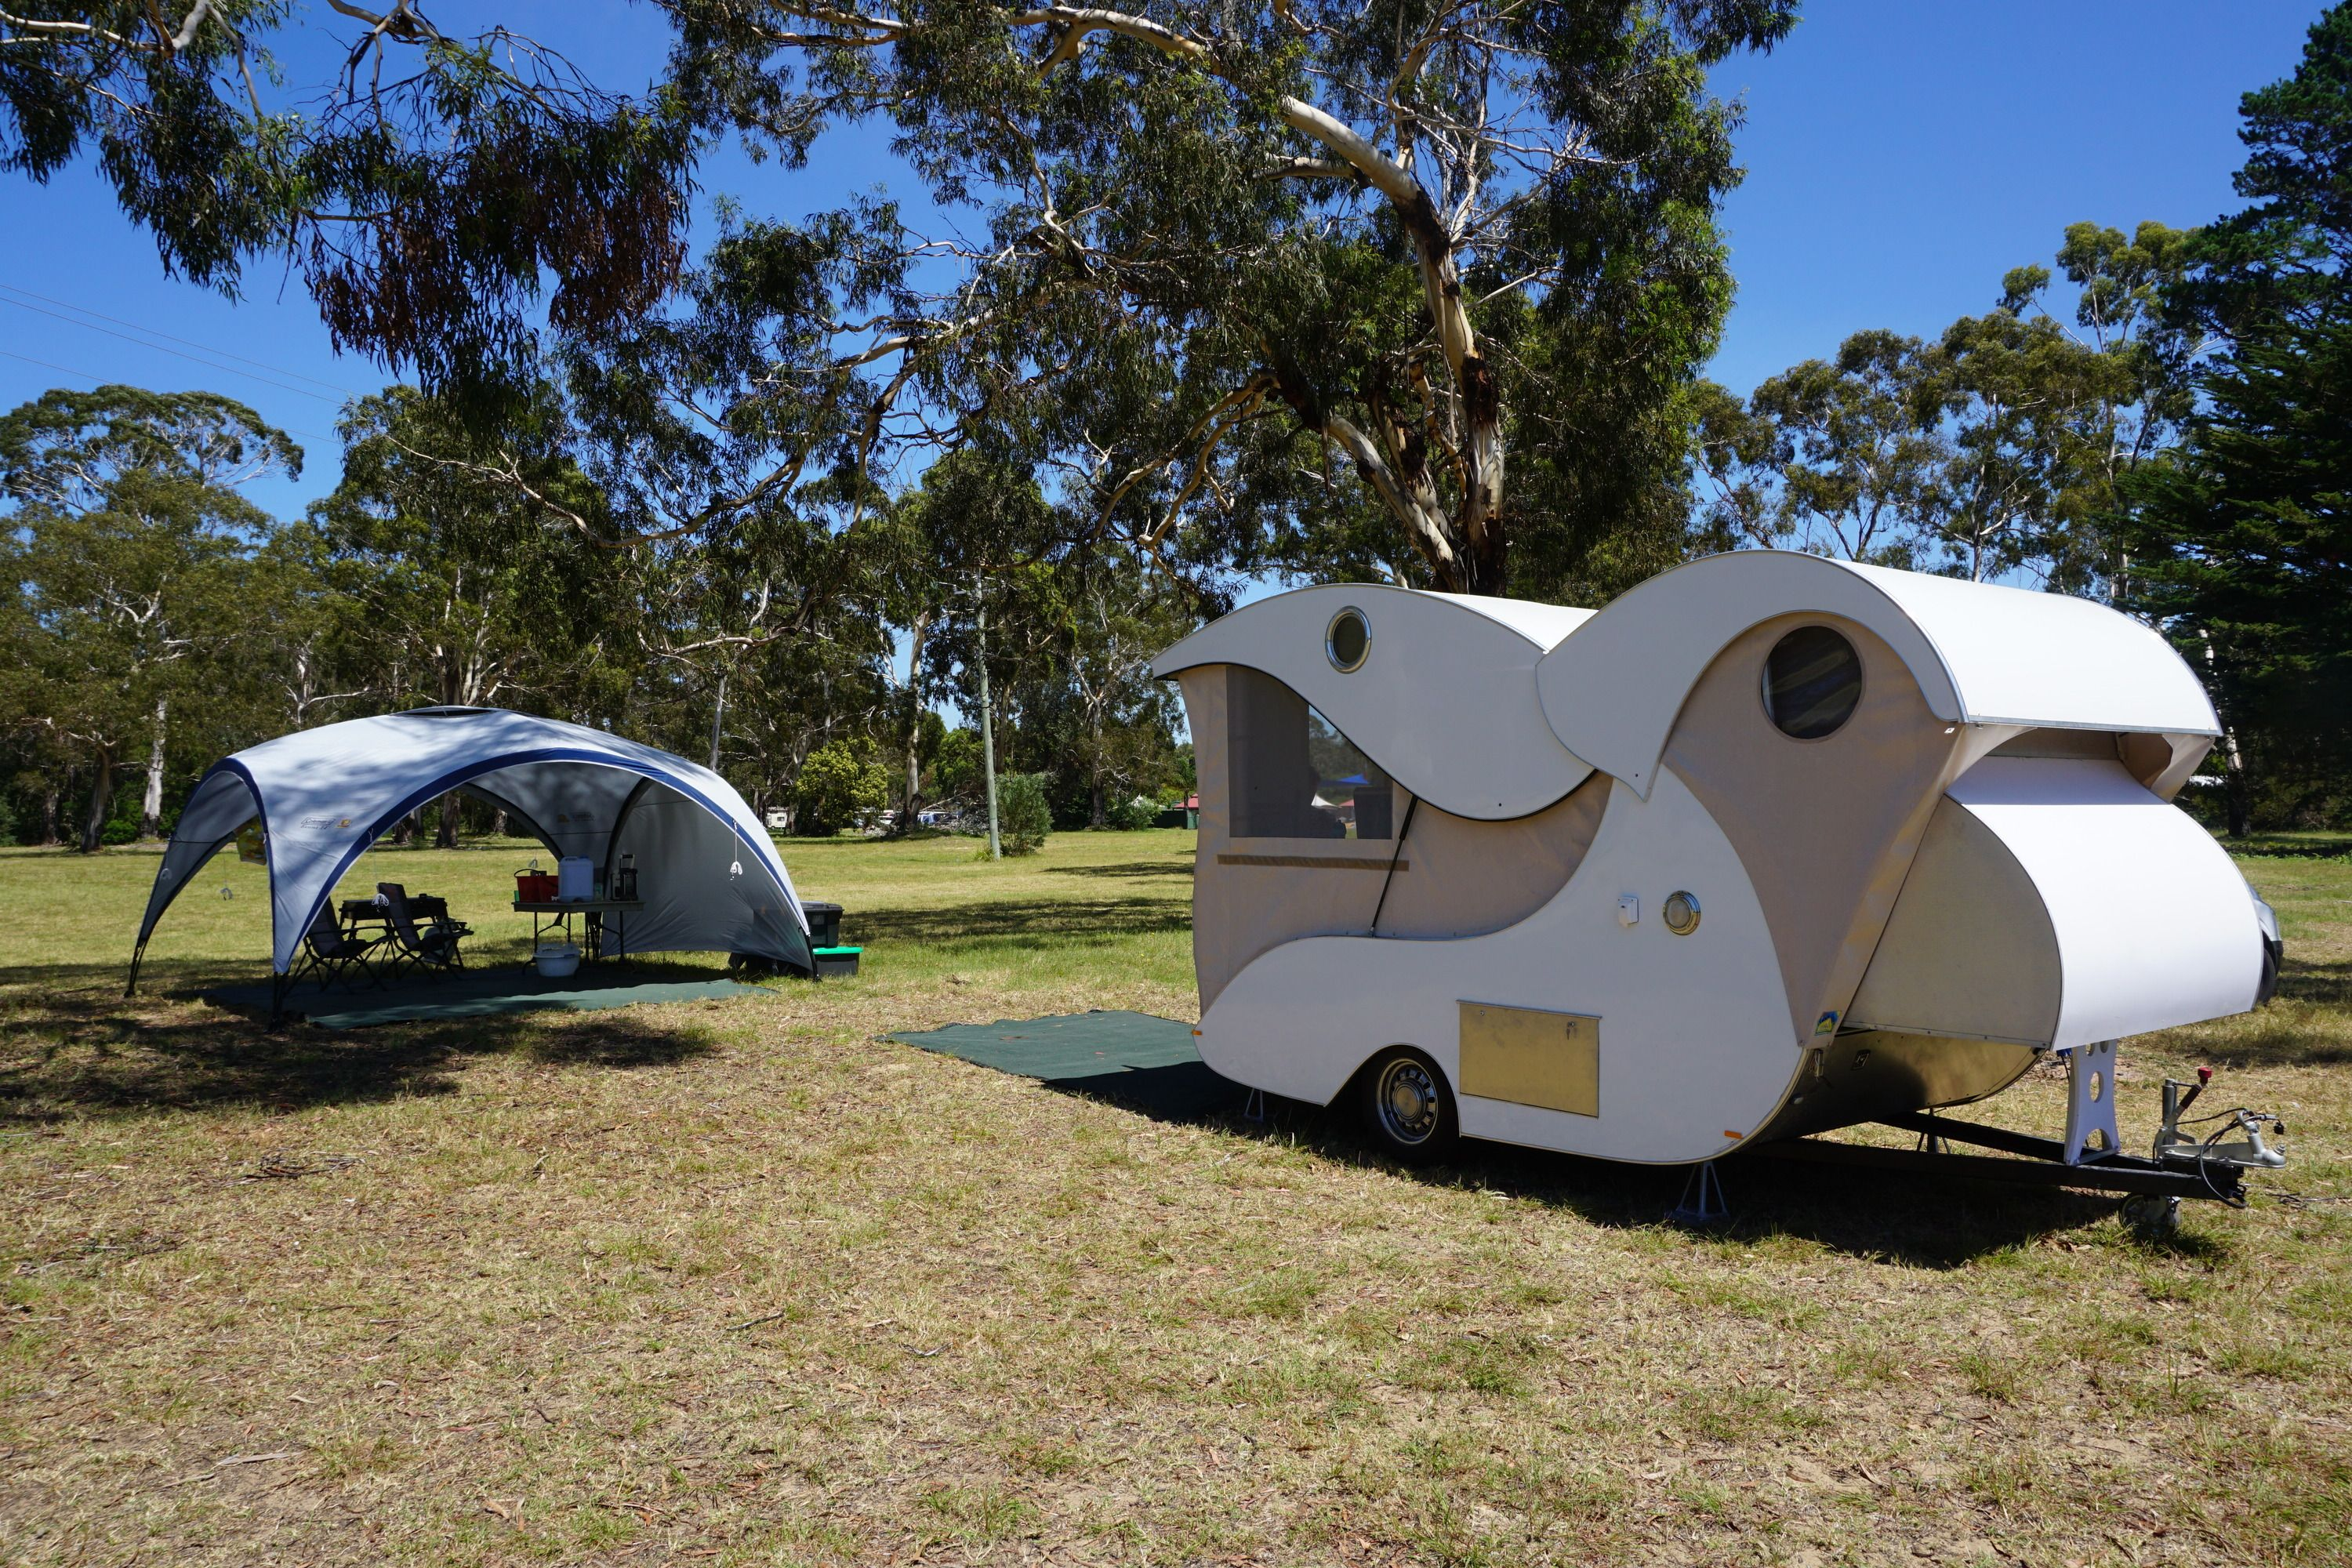 Homemade teardrop camper trailer (design inspired by Kampmaster